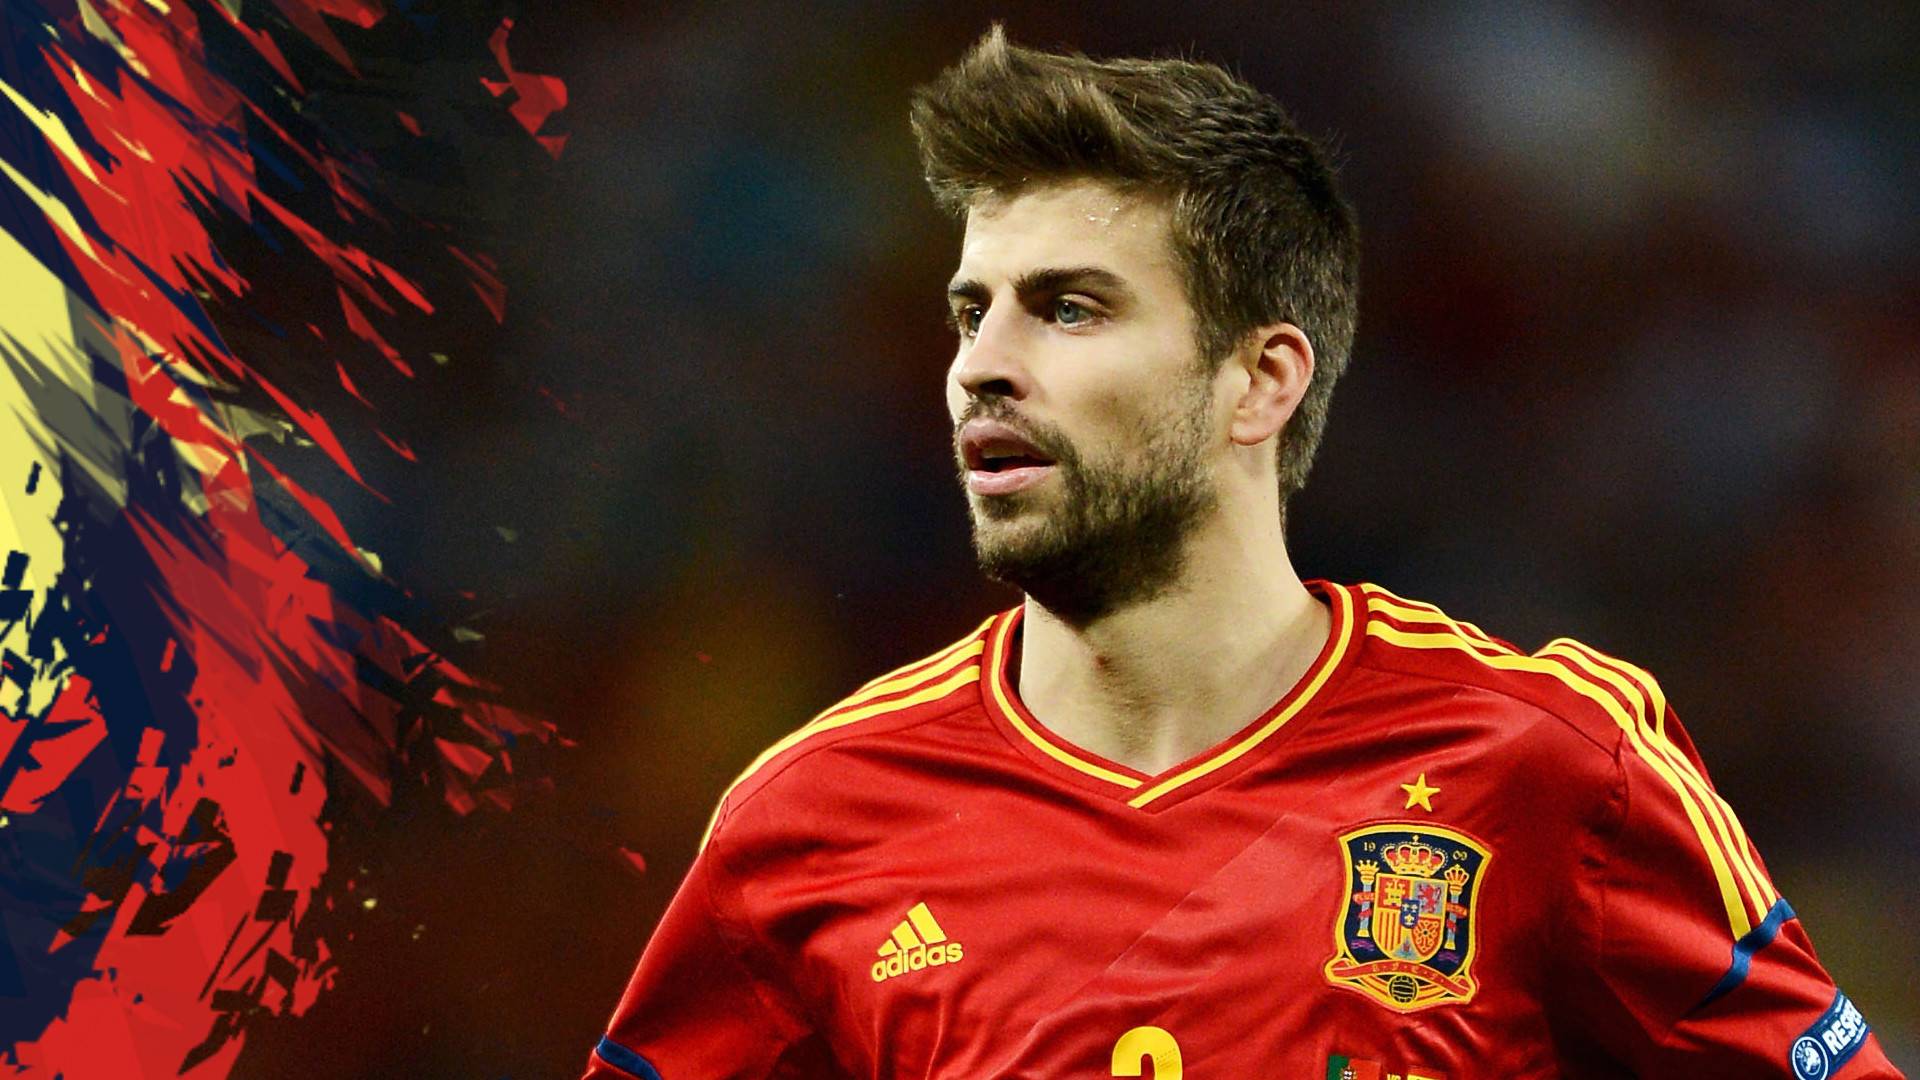 Gerard Pique Wallpaper (85+ pictures)